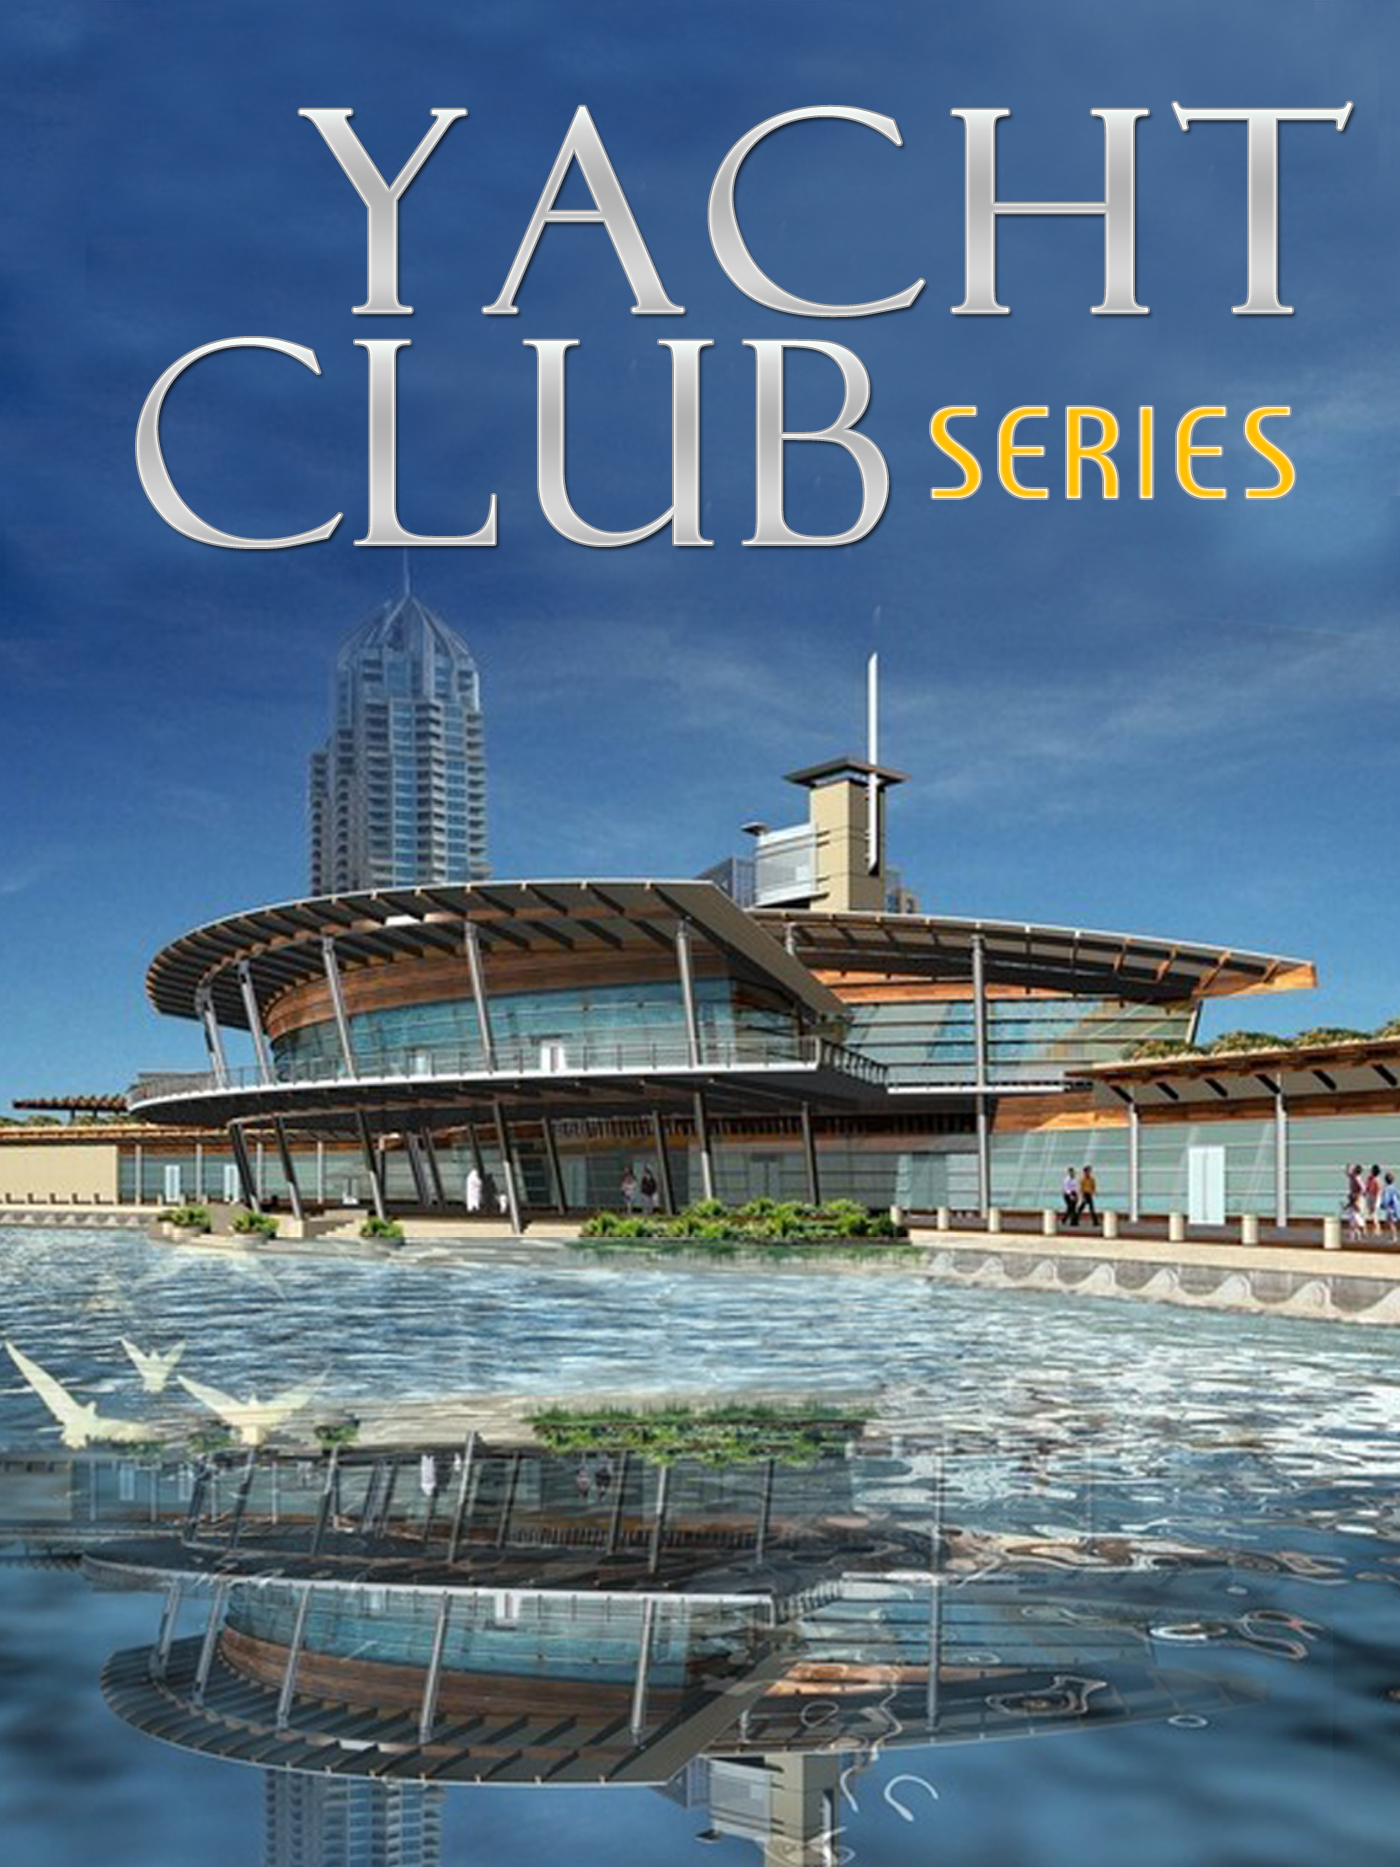 YACHT CLUB SERIES